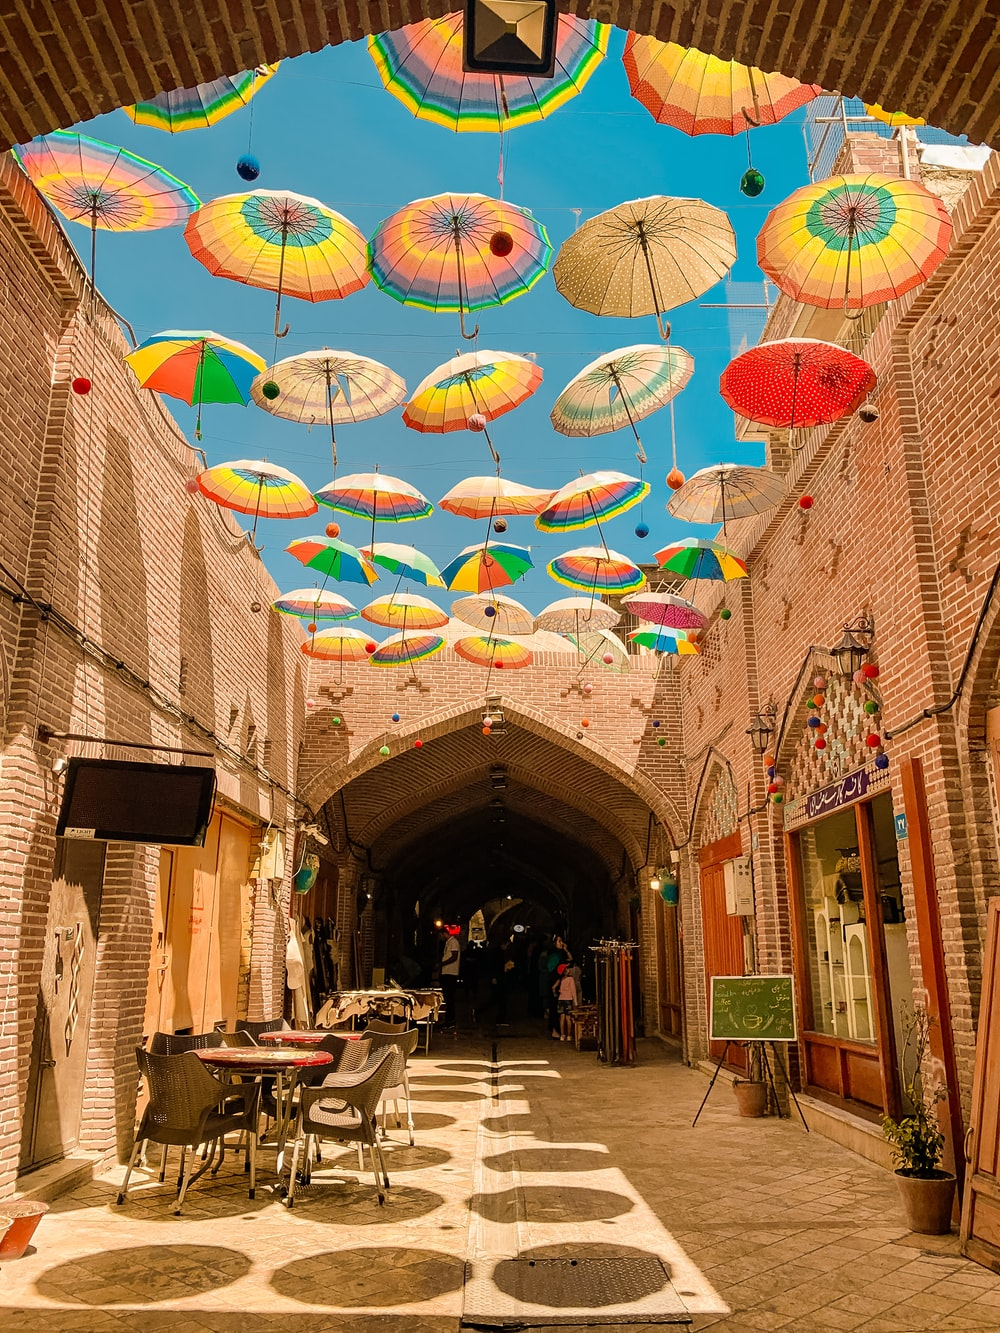 assorted-colored umbrellas hanging on alley